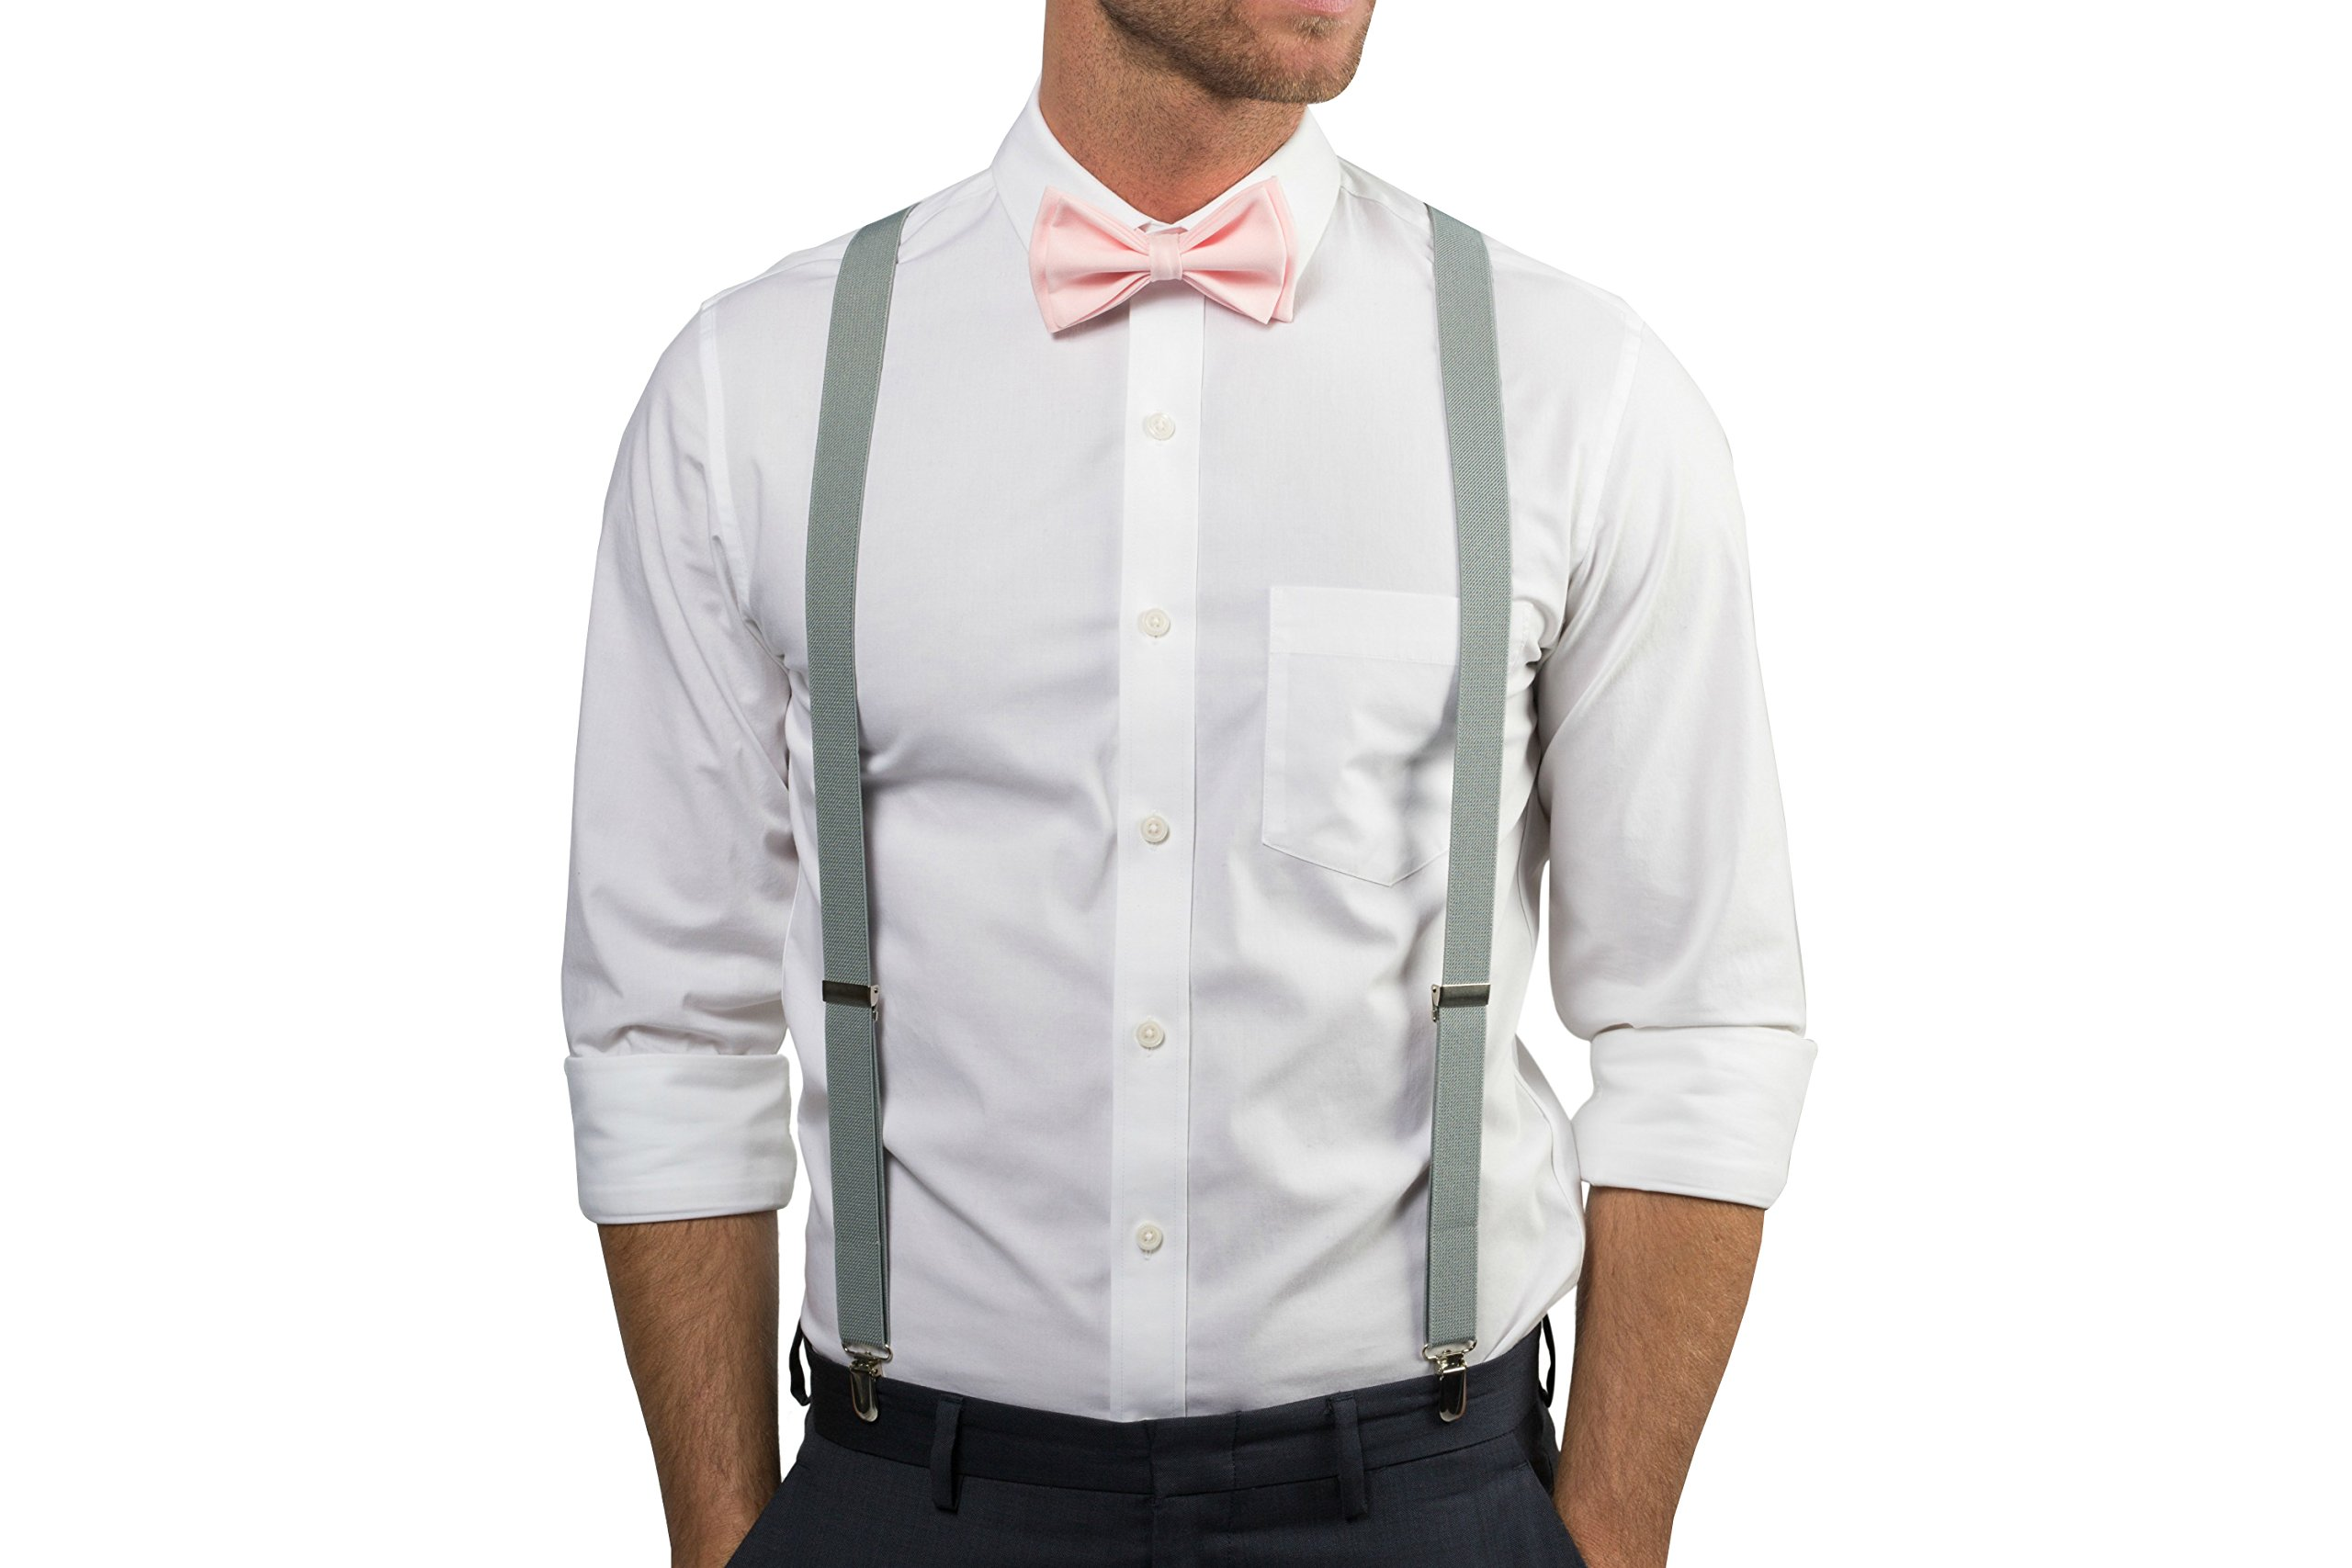 bbf762746434 Light Grey Suspenders Bow Tie Set for Baby Toddler Boy Teen Men (2. Toddler  (18 mo - 6 yrs), Light Grey Suspenders, Blush Bow Tie) - 7894592432 < Tie  Sets ...